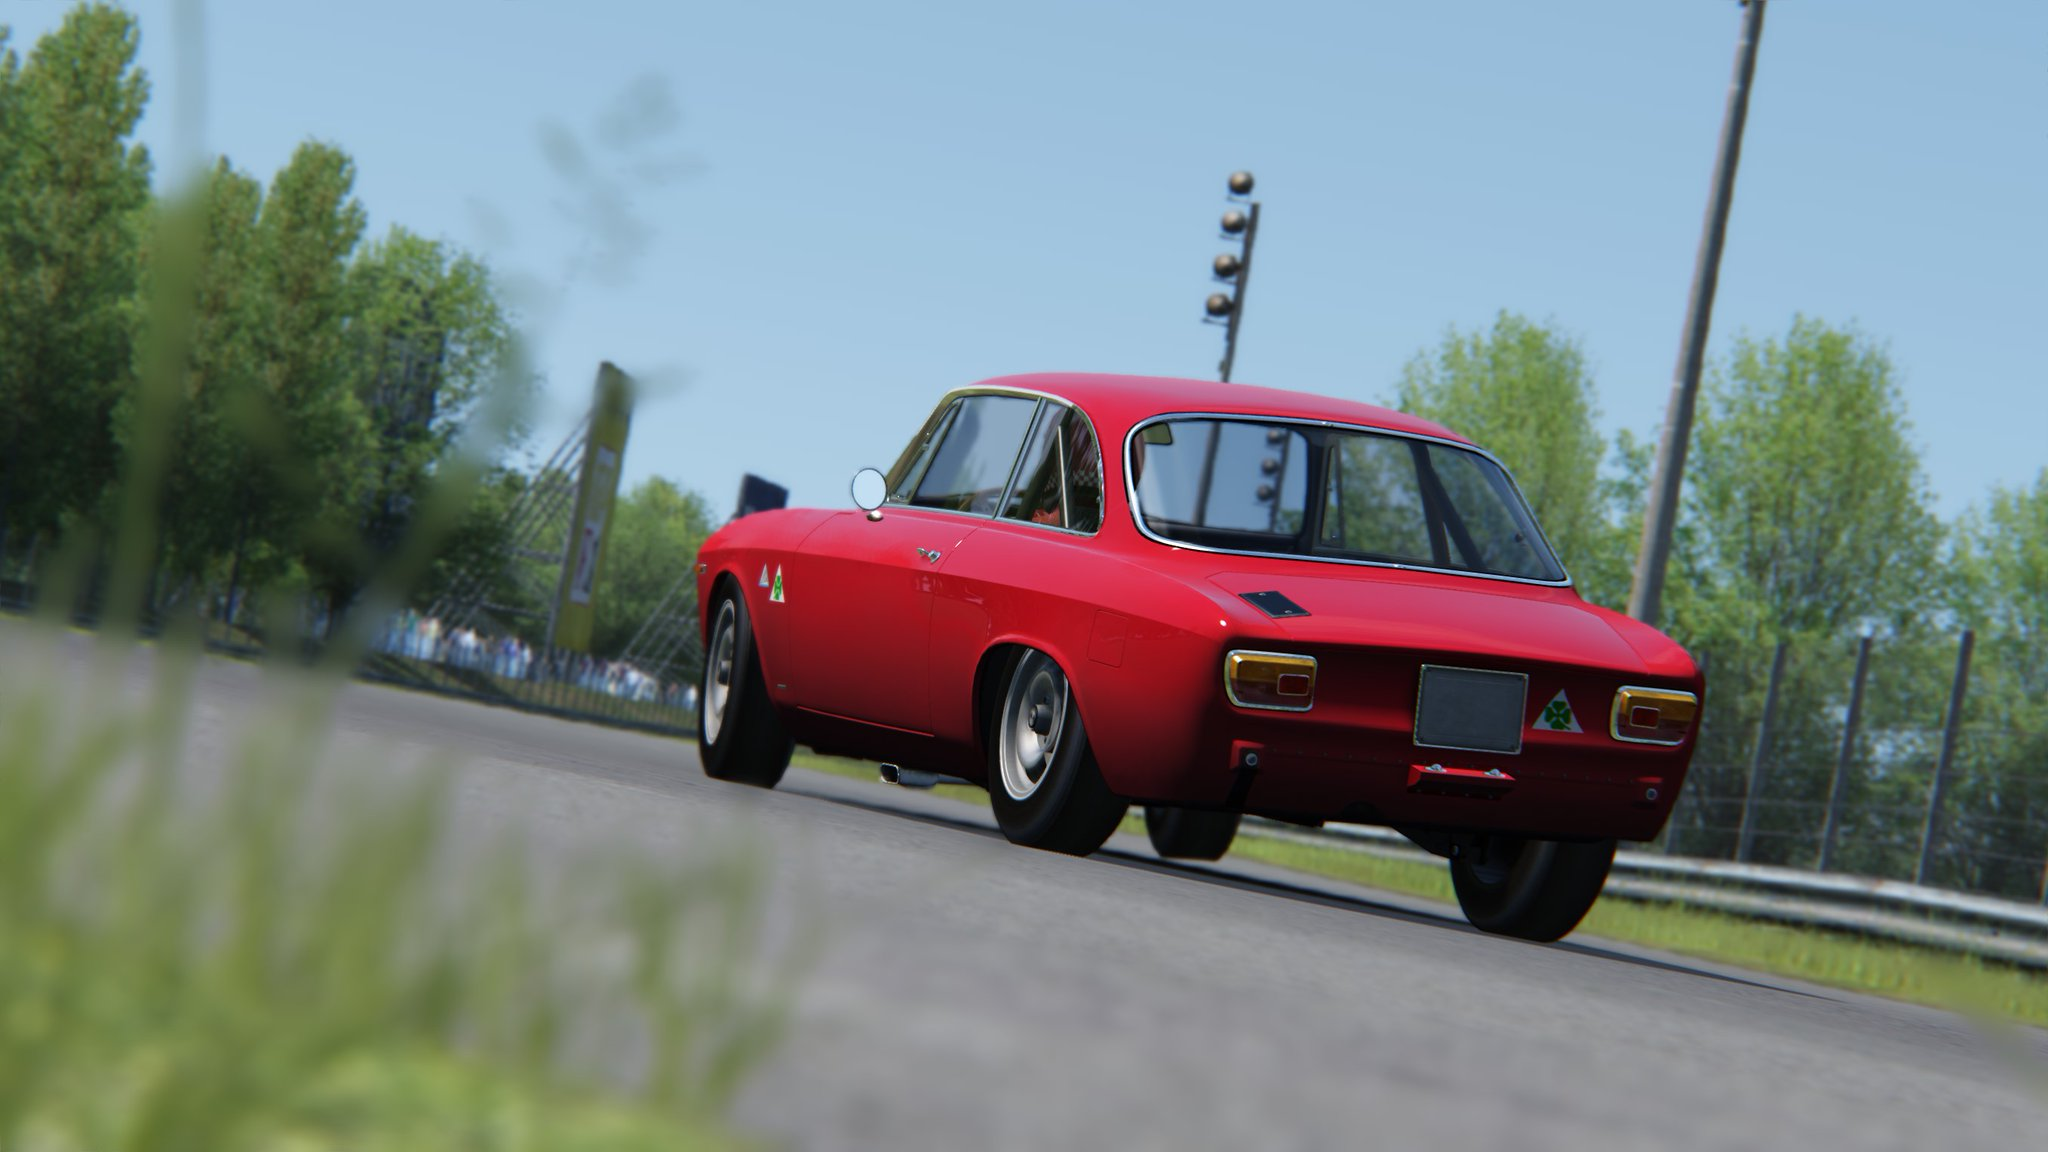 Assetto Corsa Build 1.14.4 Update Released! Assetto-corsa-update-1-14-4-jpg